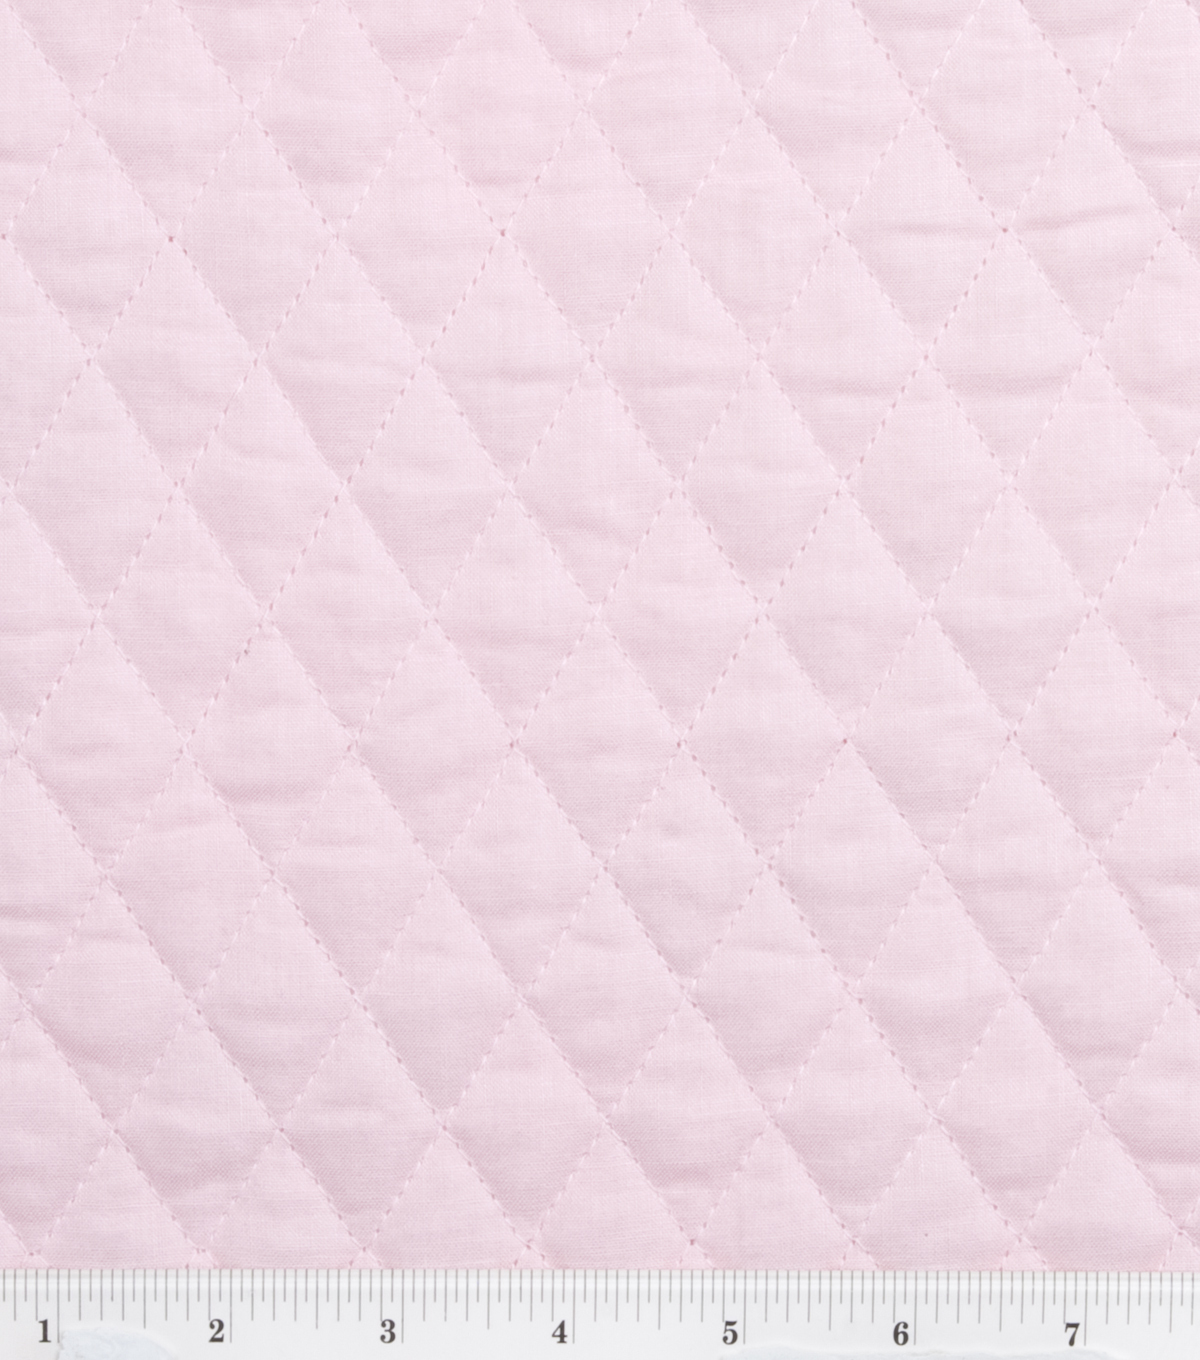 Double Faced Pre-Quilted Cotton Fabric -Diamond Solids, Pink